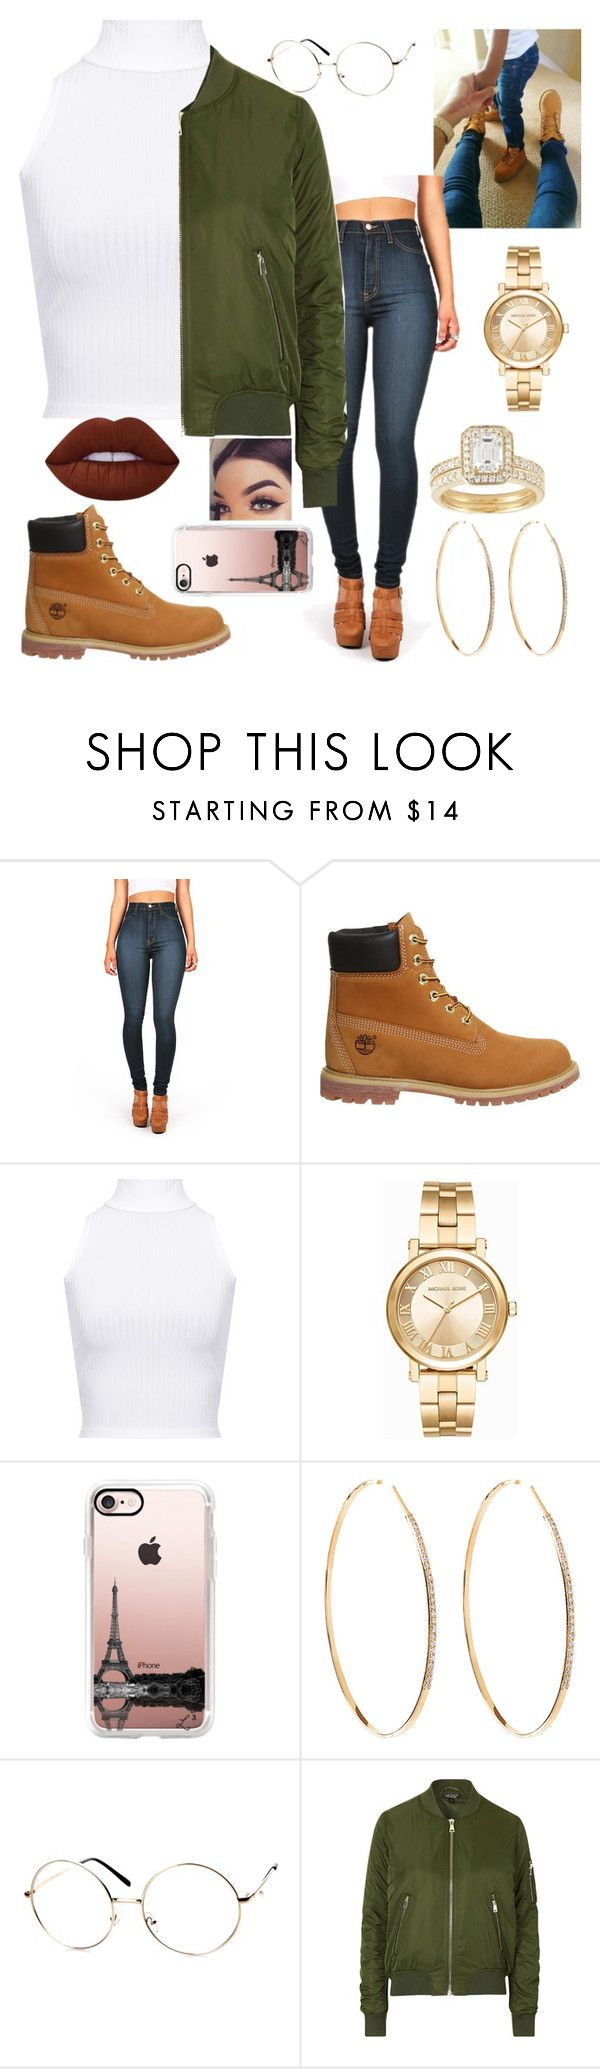 """Untitled #299"" by official-zay-outfits ❤ liked on Polyvore featuring Vibrant, Timberland, WearAll, Michael Kors, Casetify, Lana, ZeroUV, Topshop and Lime Crime"